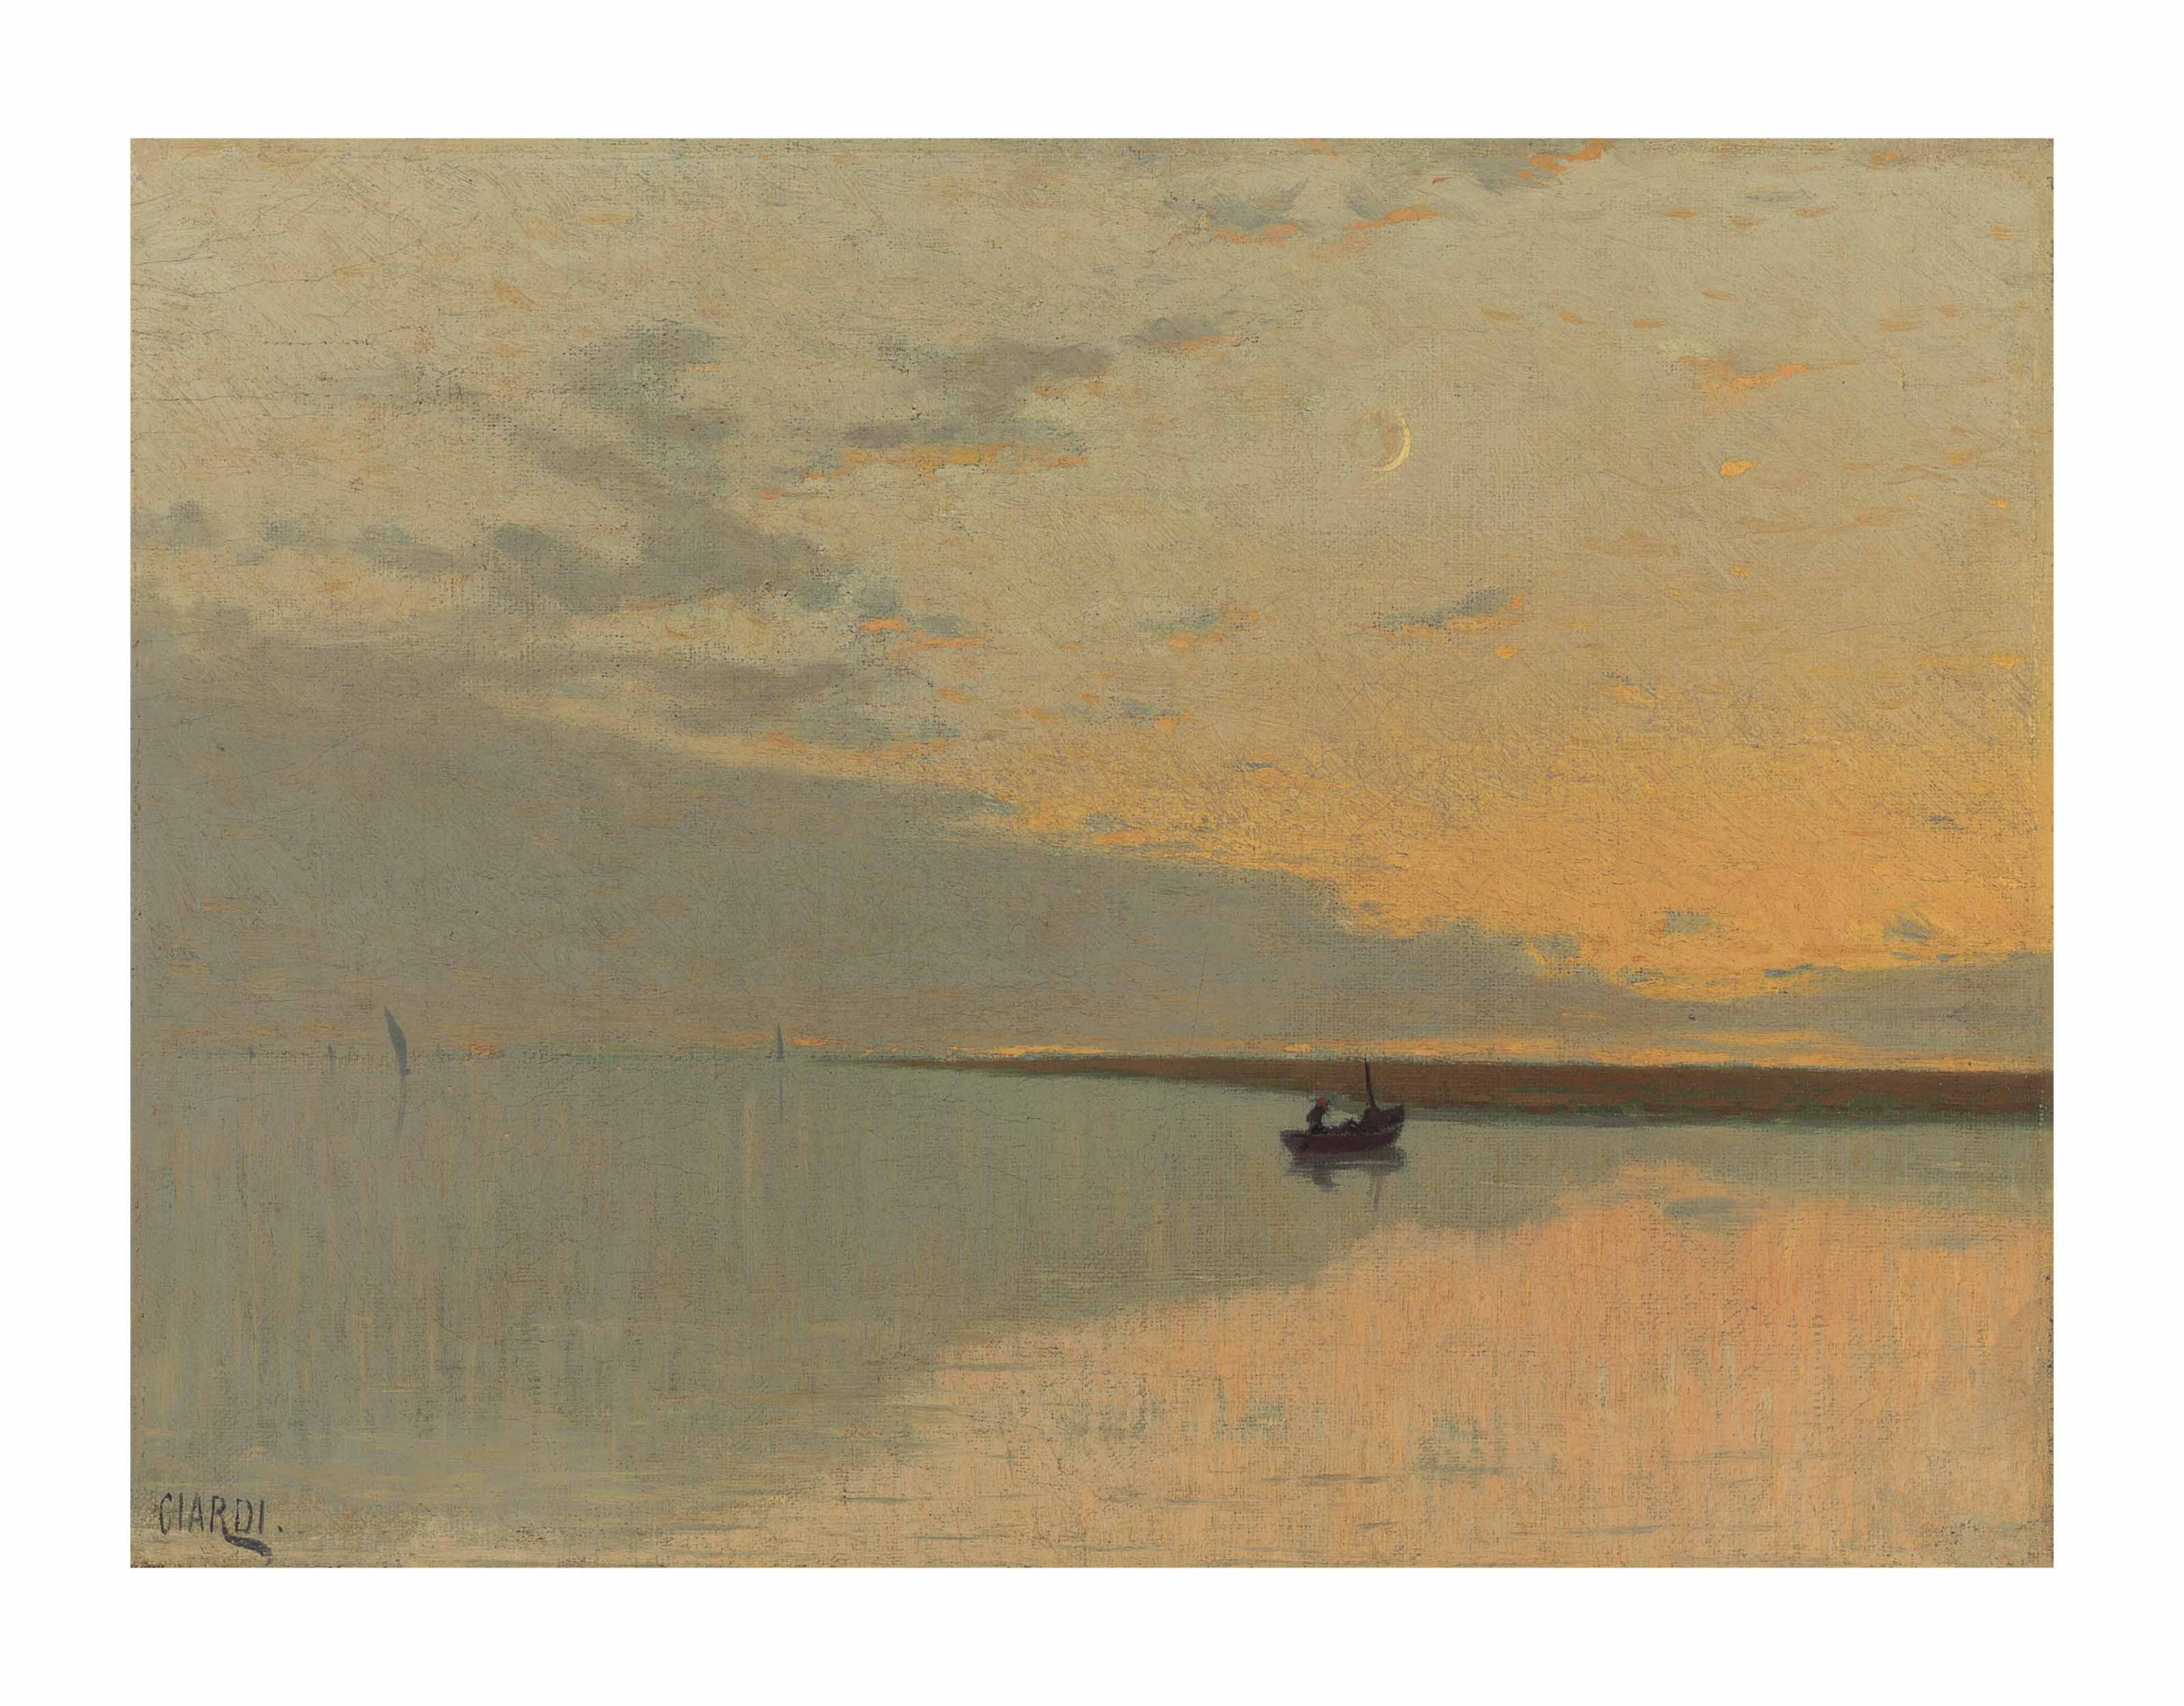 View of the Venetian Lagoon at sunset